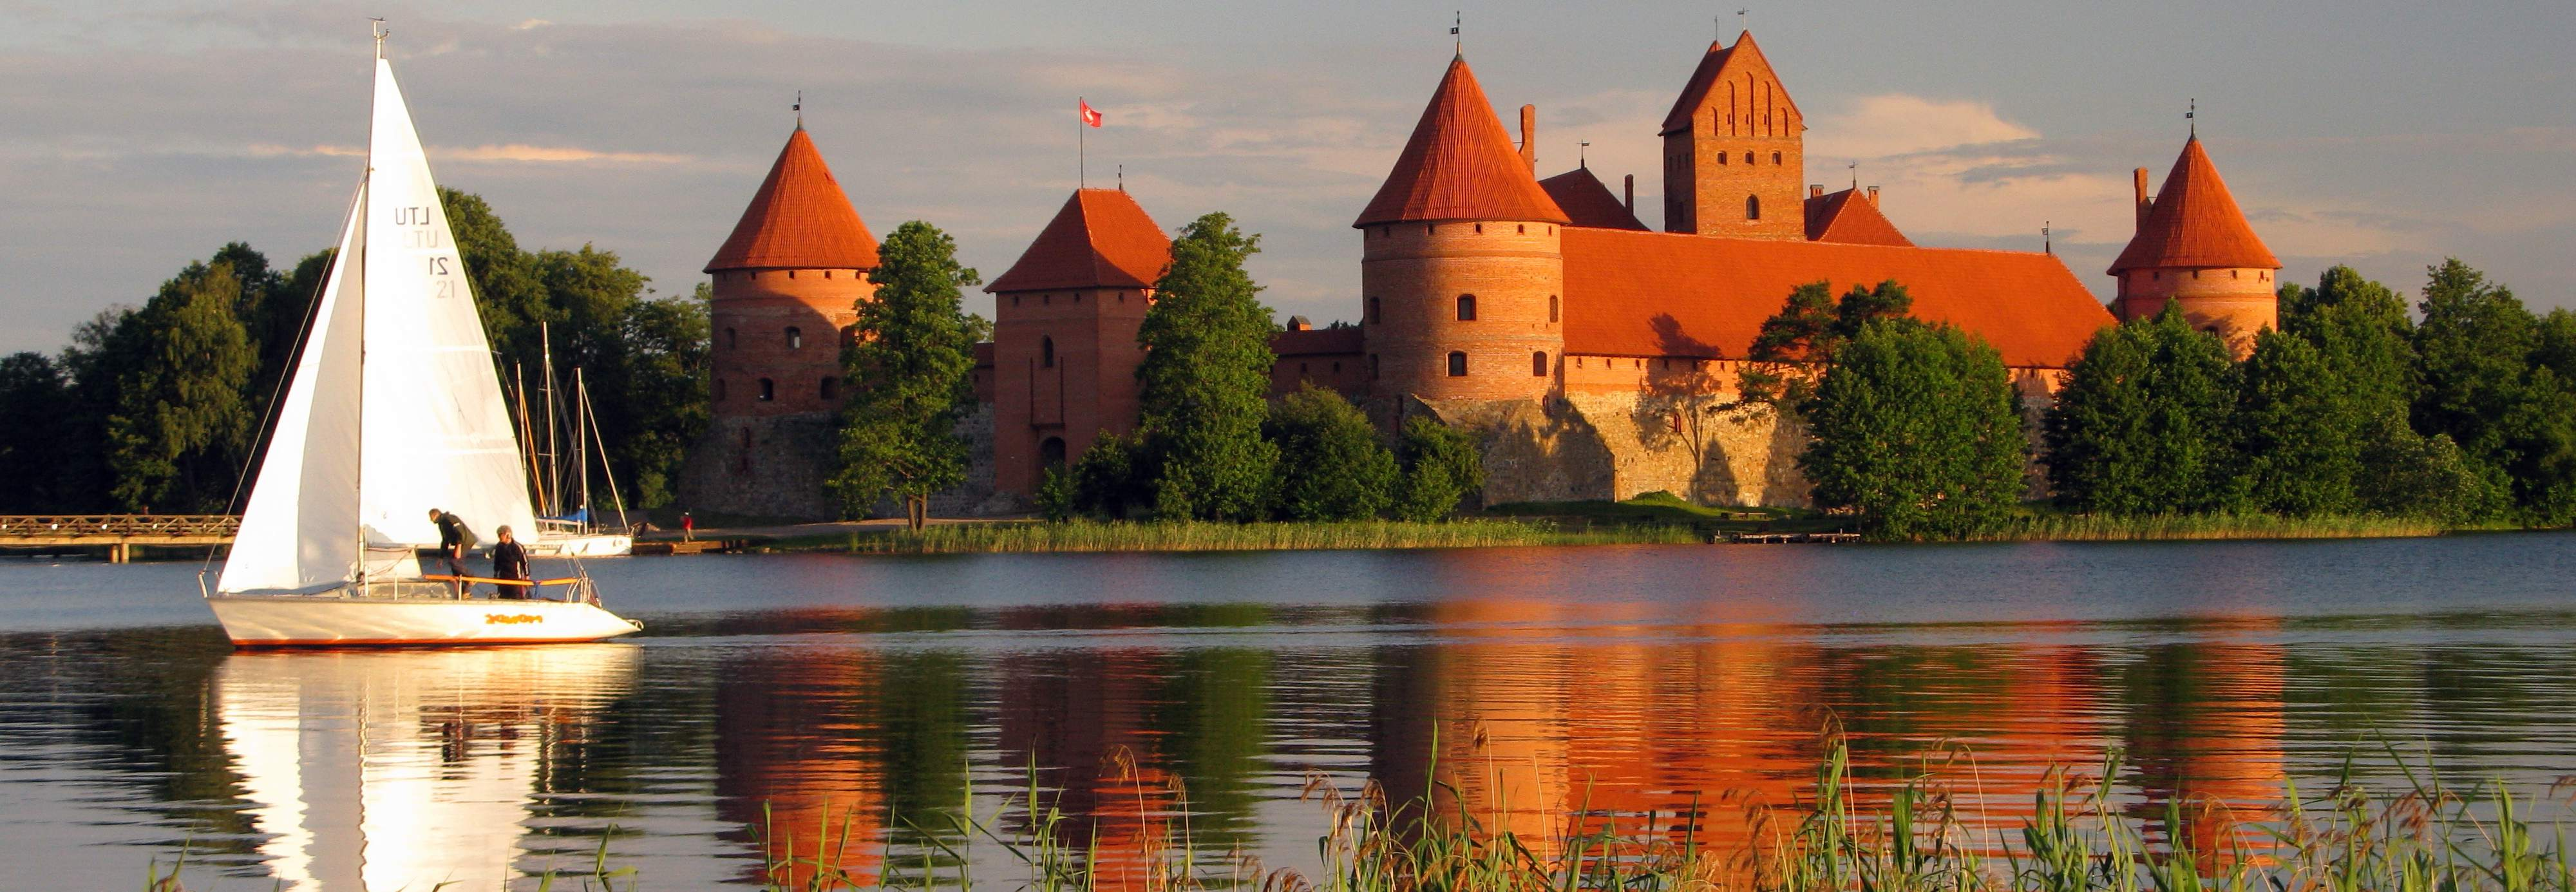 Trakai castle Lithuania لیتوانی